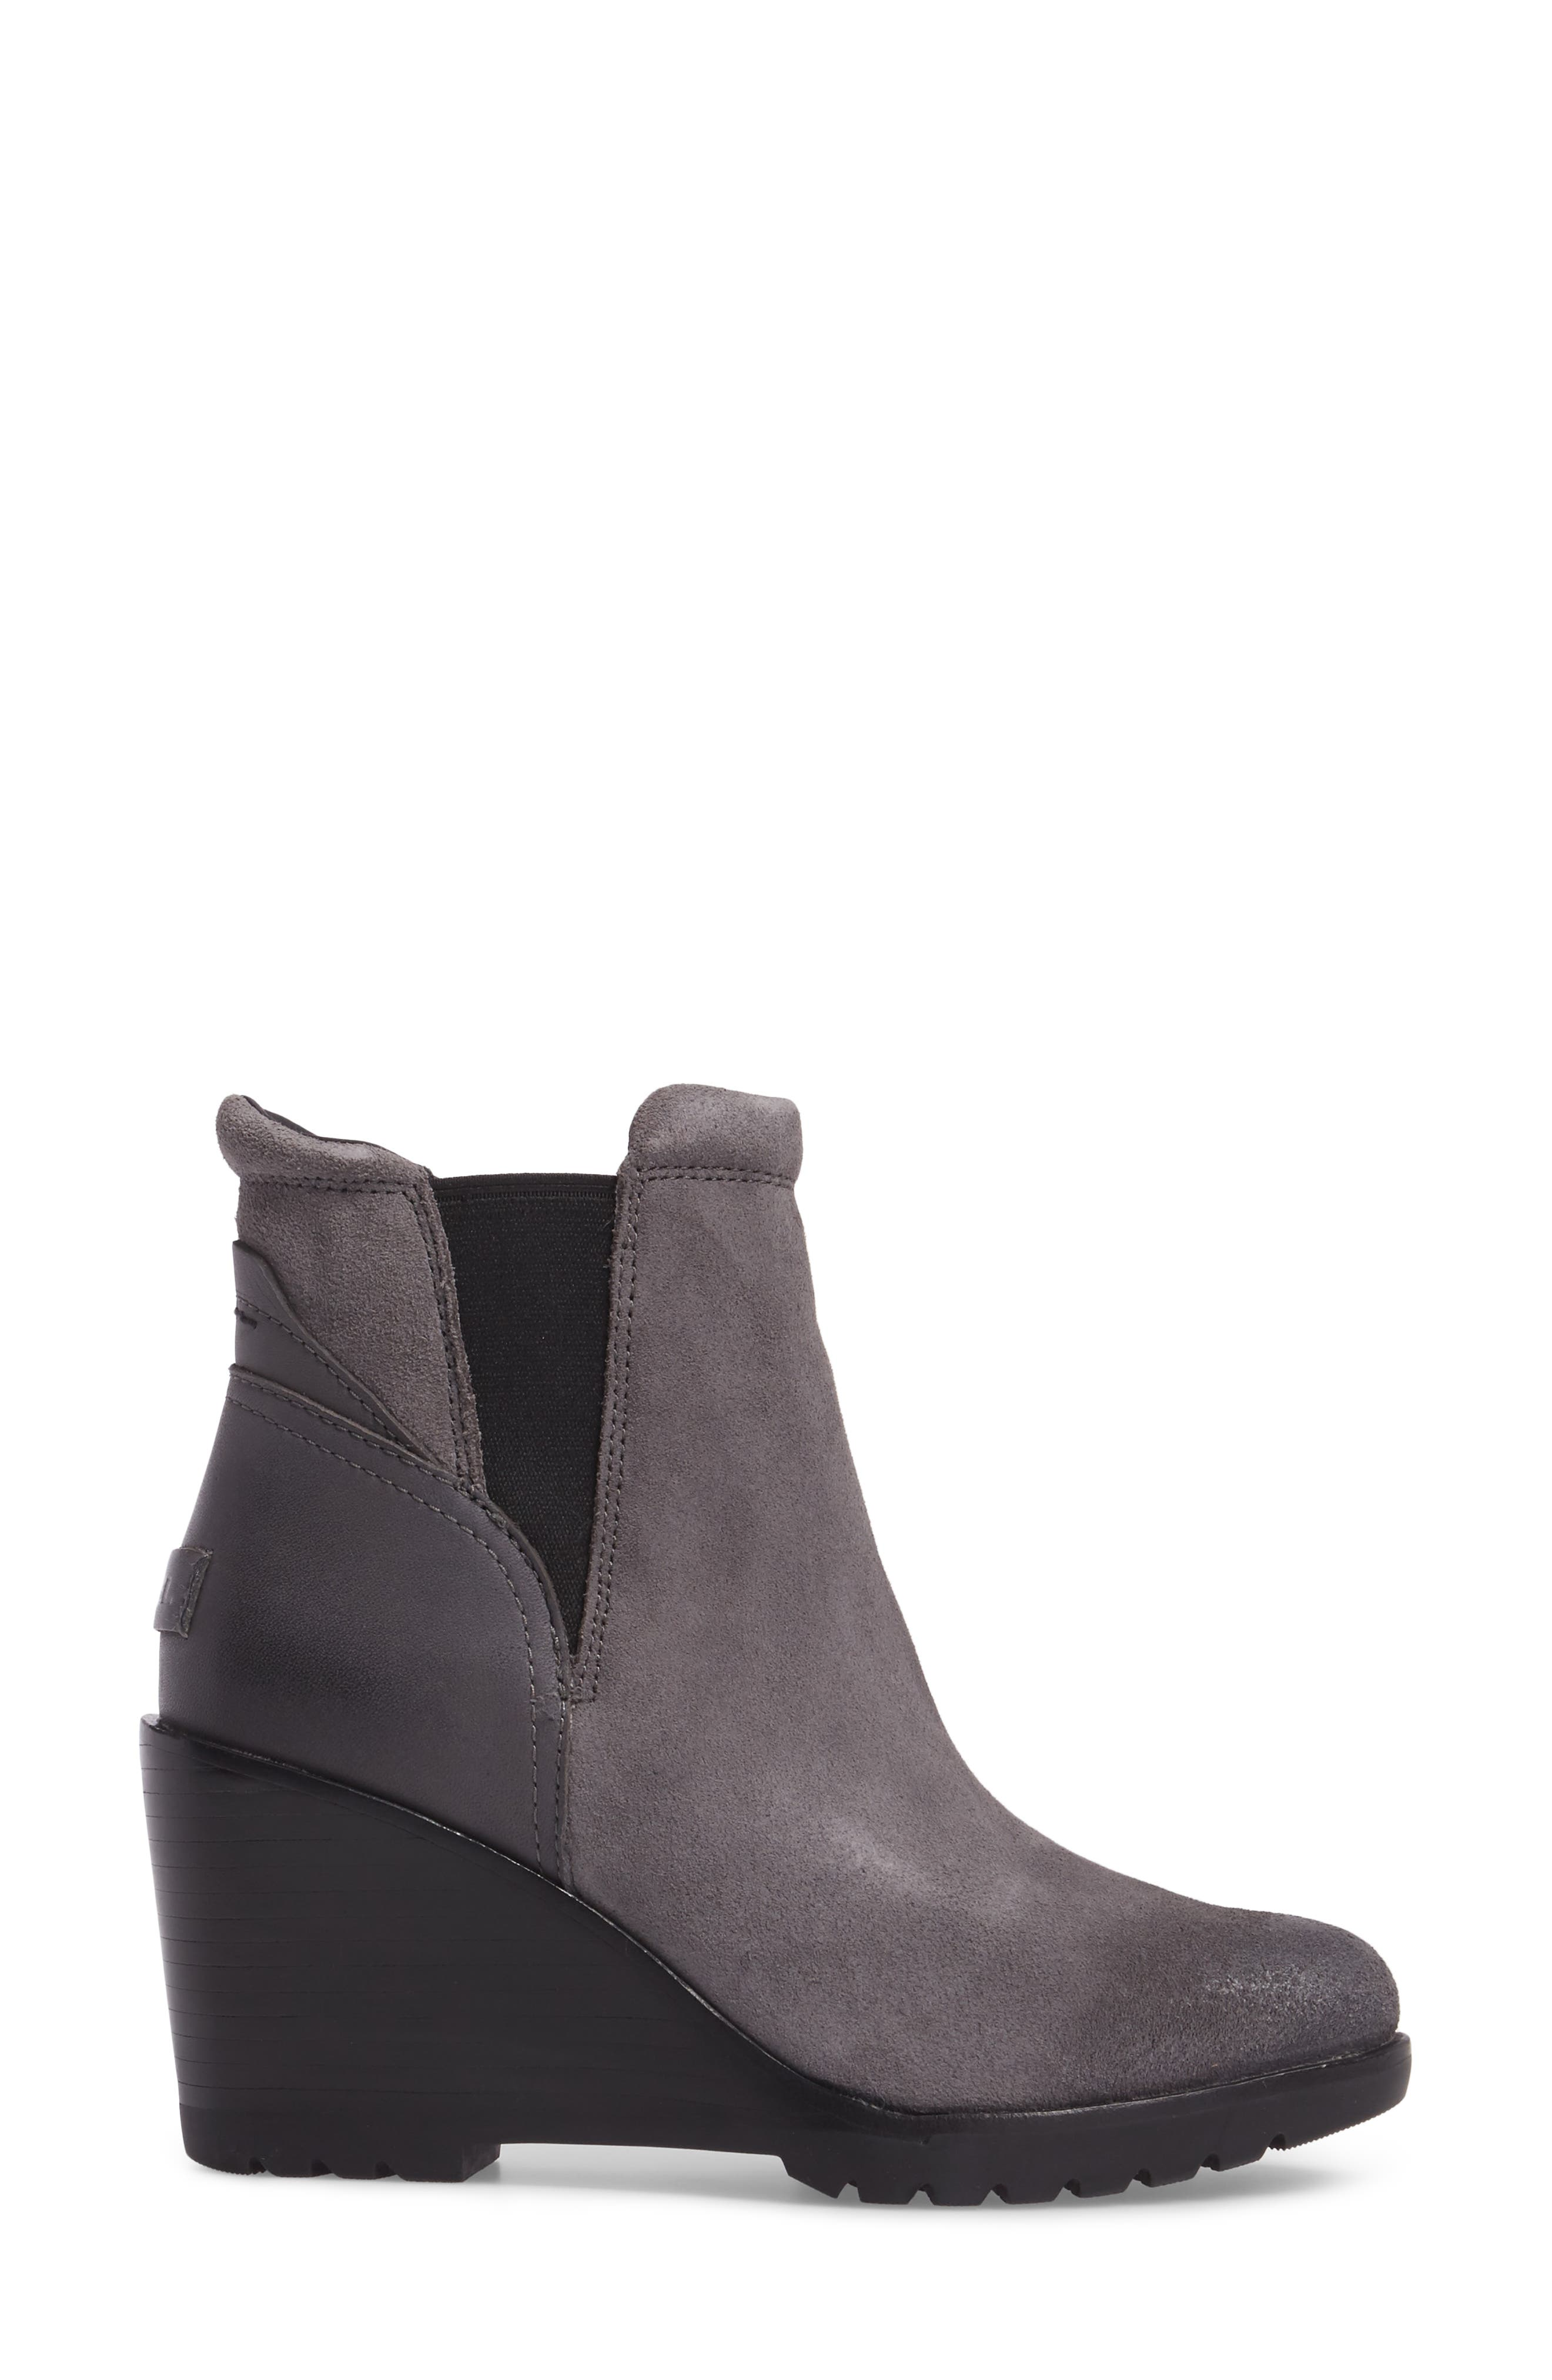 After Hours Chelsea Boot,                             Alternate thumbnail 13, color,